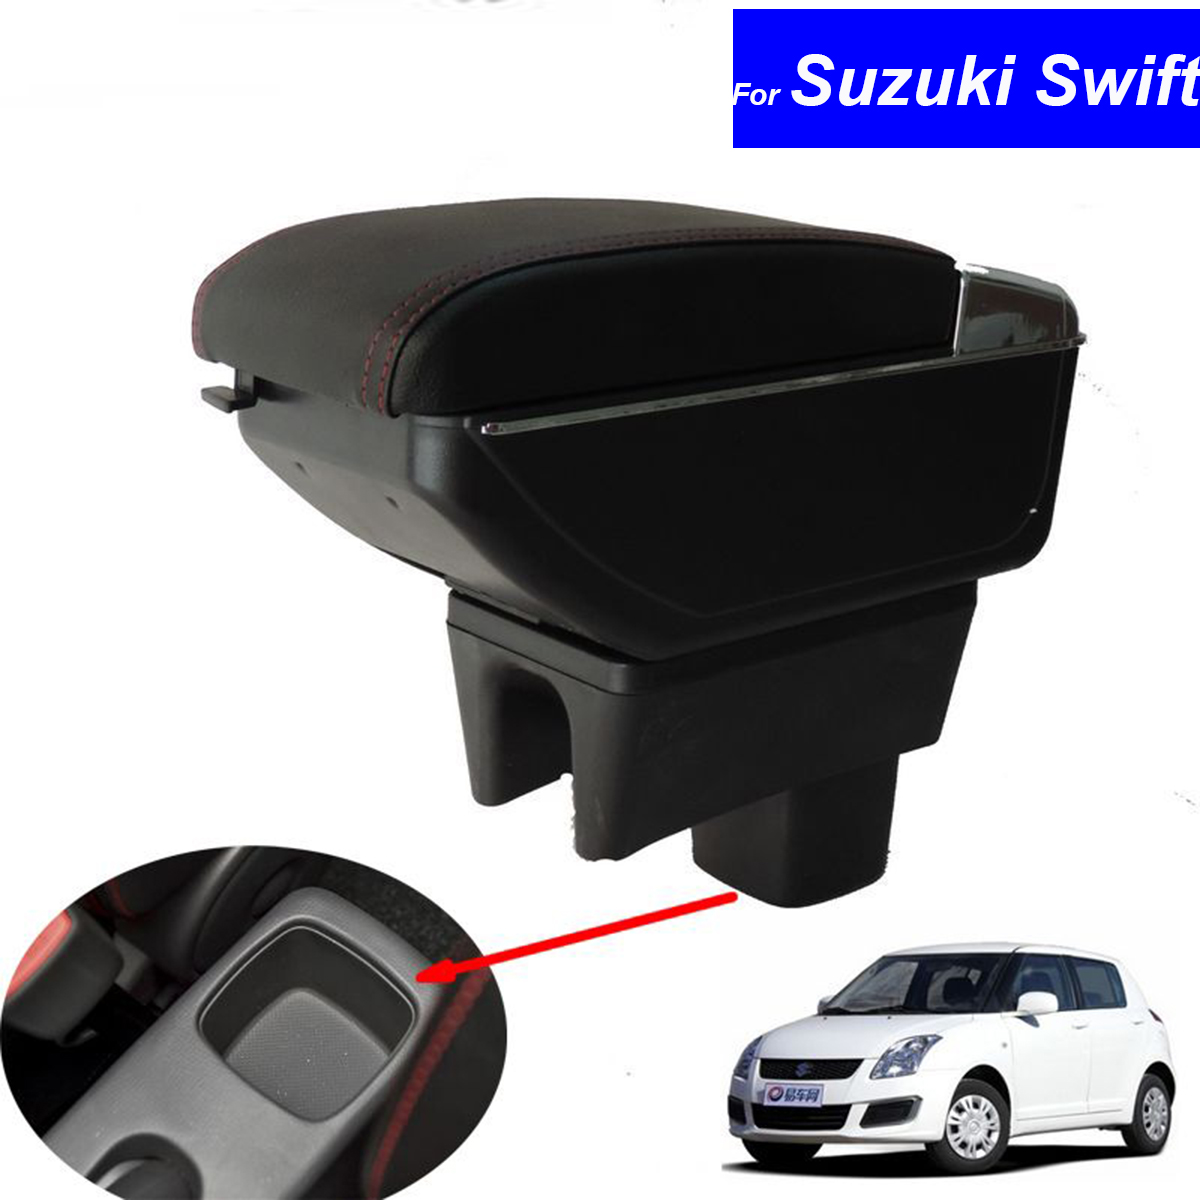 Leather Car Center Console Armrest Box for Suzuki Swift 2008 2009 2010 2011 2012 2013 2014 2015 2016 Armrests Free Shipping car rear trunk security shield shade cargo cover for nissan qashqai 2008 2009 2010 2011 2012 2013 black beige